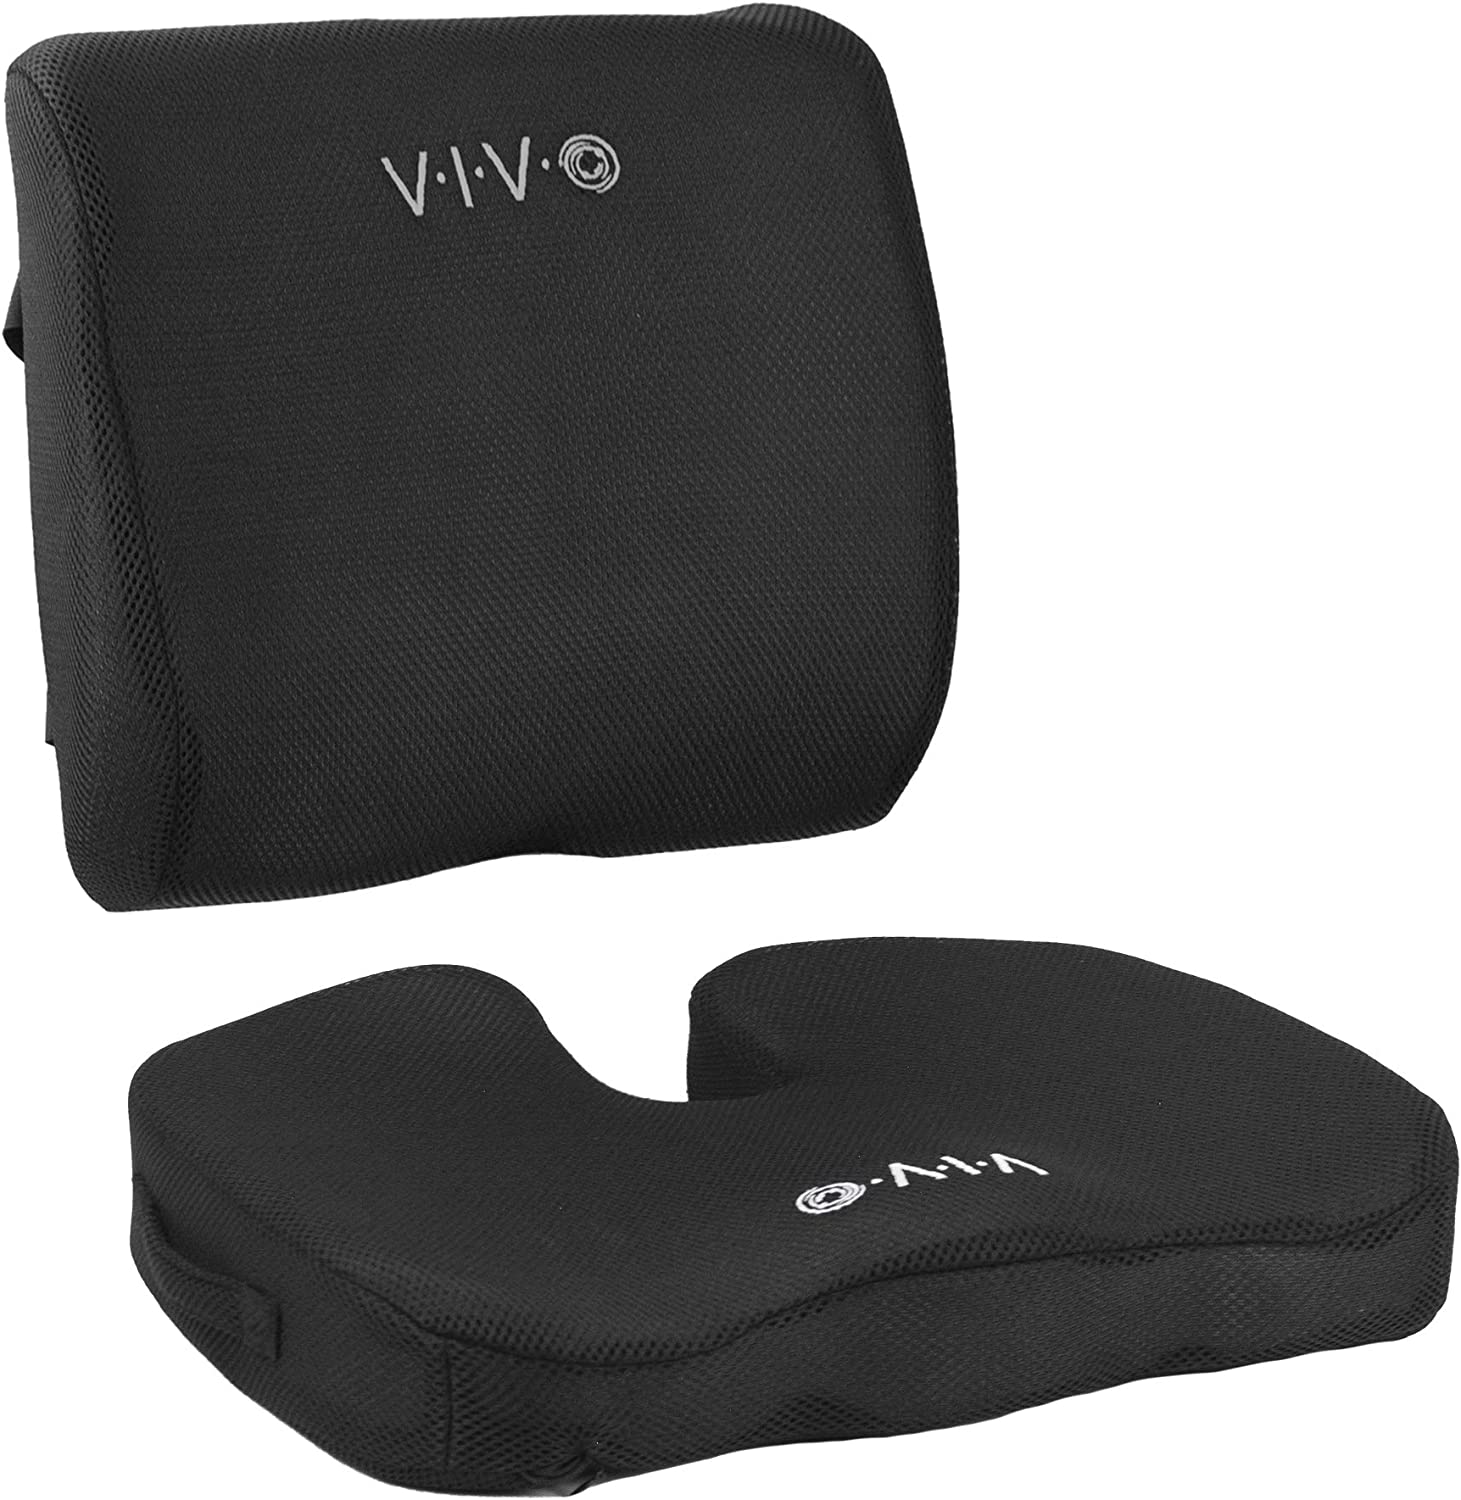 VIVO Black Memory Foam Seat Bottom and Back Cushion Combo Designed for Office Chairs Adjustable Security Straps and Comfort Padding CUSH-V02K